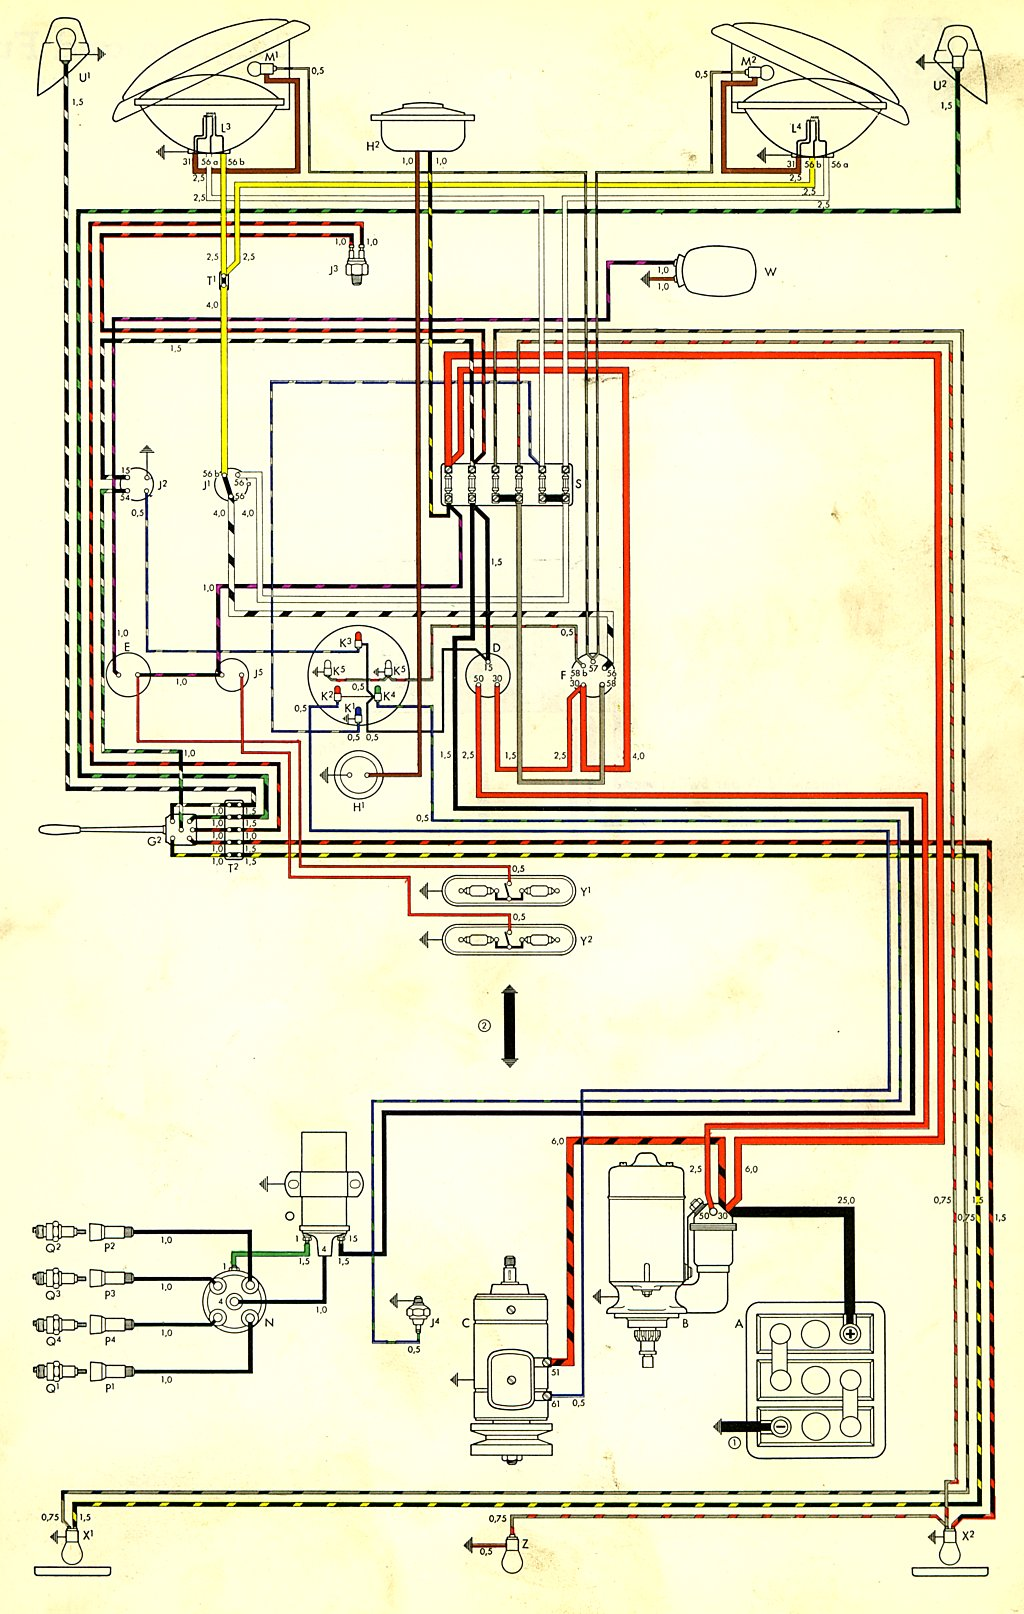 volkswagen van wiring diagram schematic diagram 1973 VW Wiring Diagram thesamba com type 2 wiring diagrams 1974 super beetle wiring diagram volkswagen van wiring diagram